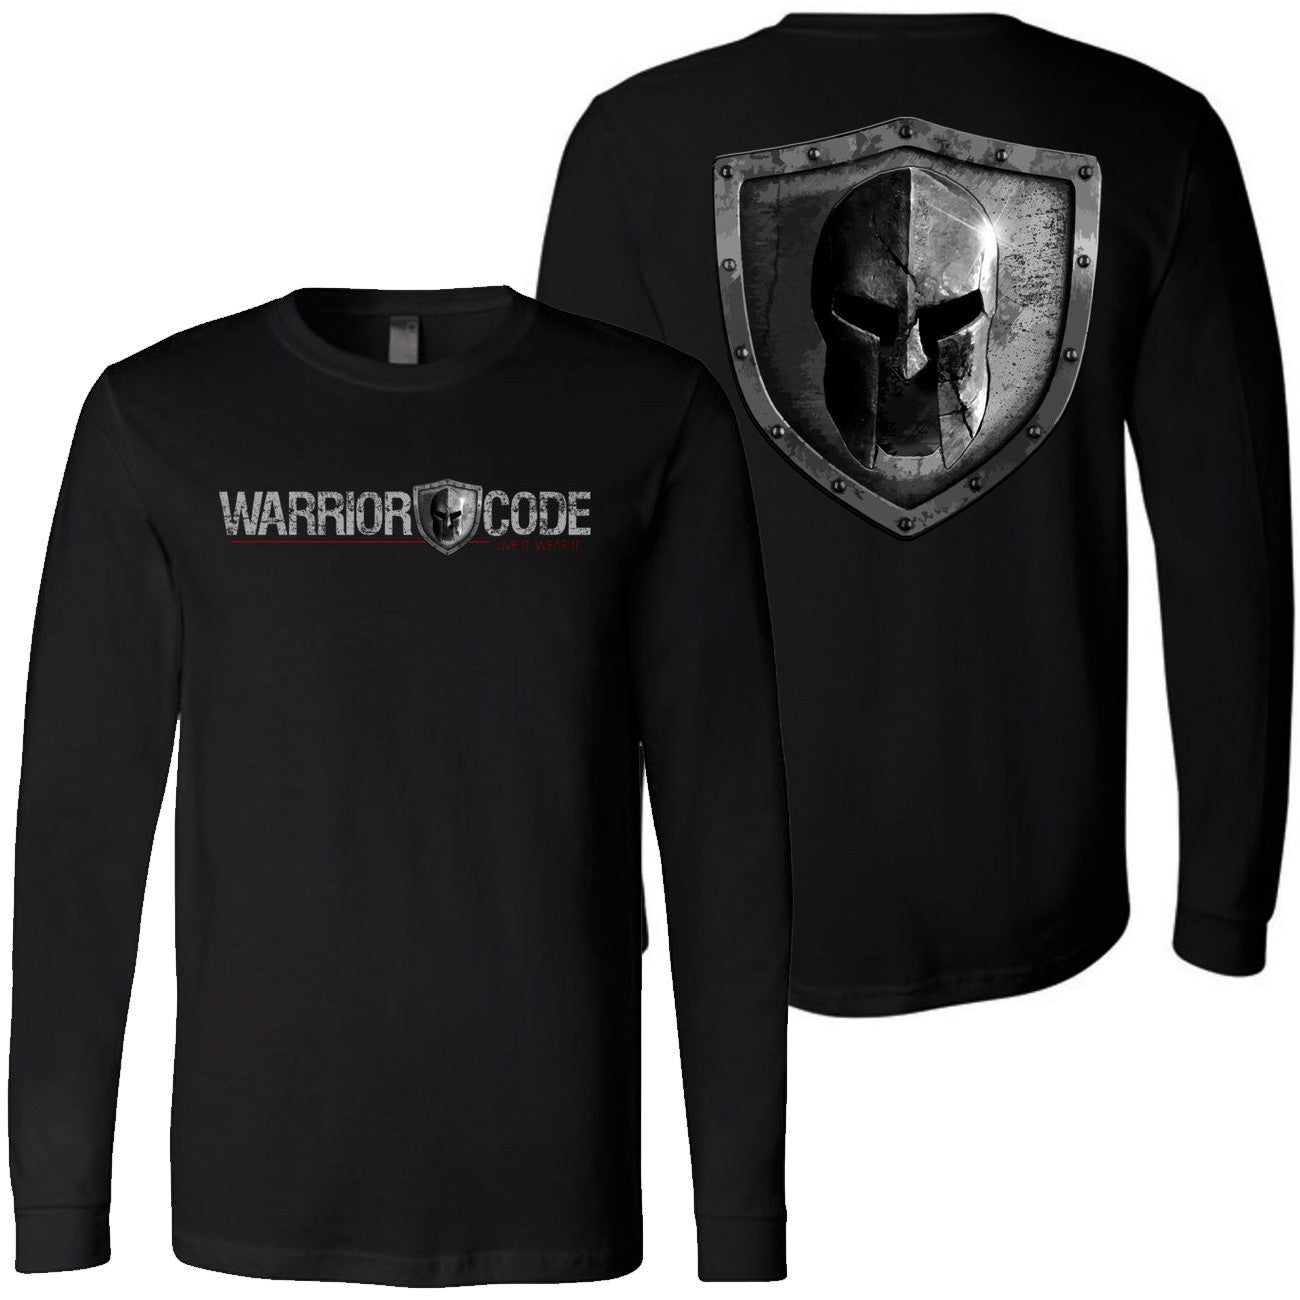 Warrior Code Logo and Shield Long Sleeve Tshirt - Warrior Code